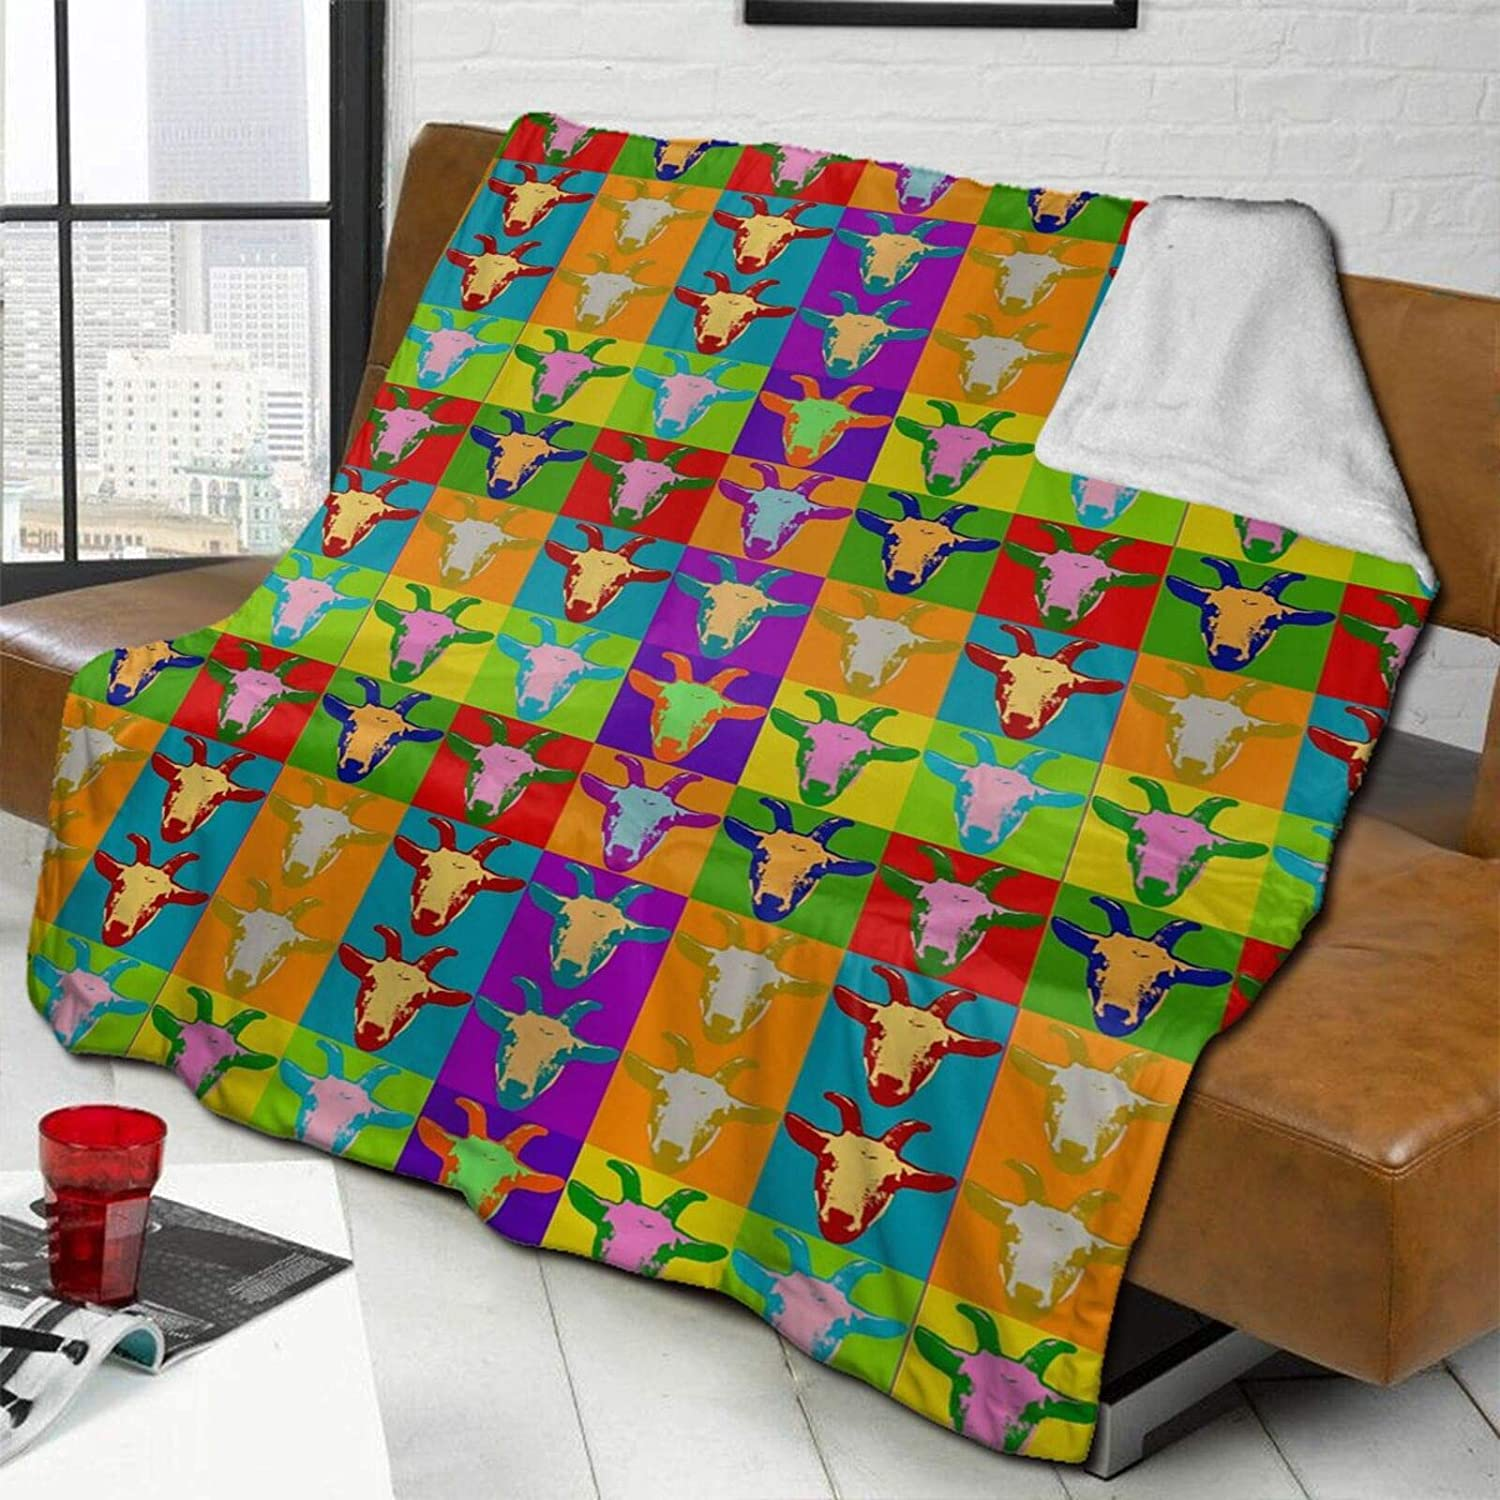 MSACRH Throw Blanket for Couch Goats Fleece Colorful Me Weekly Houston Mall update Blankets